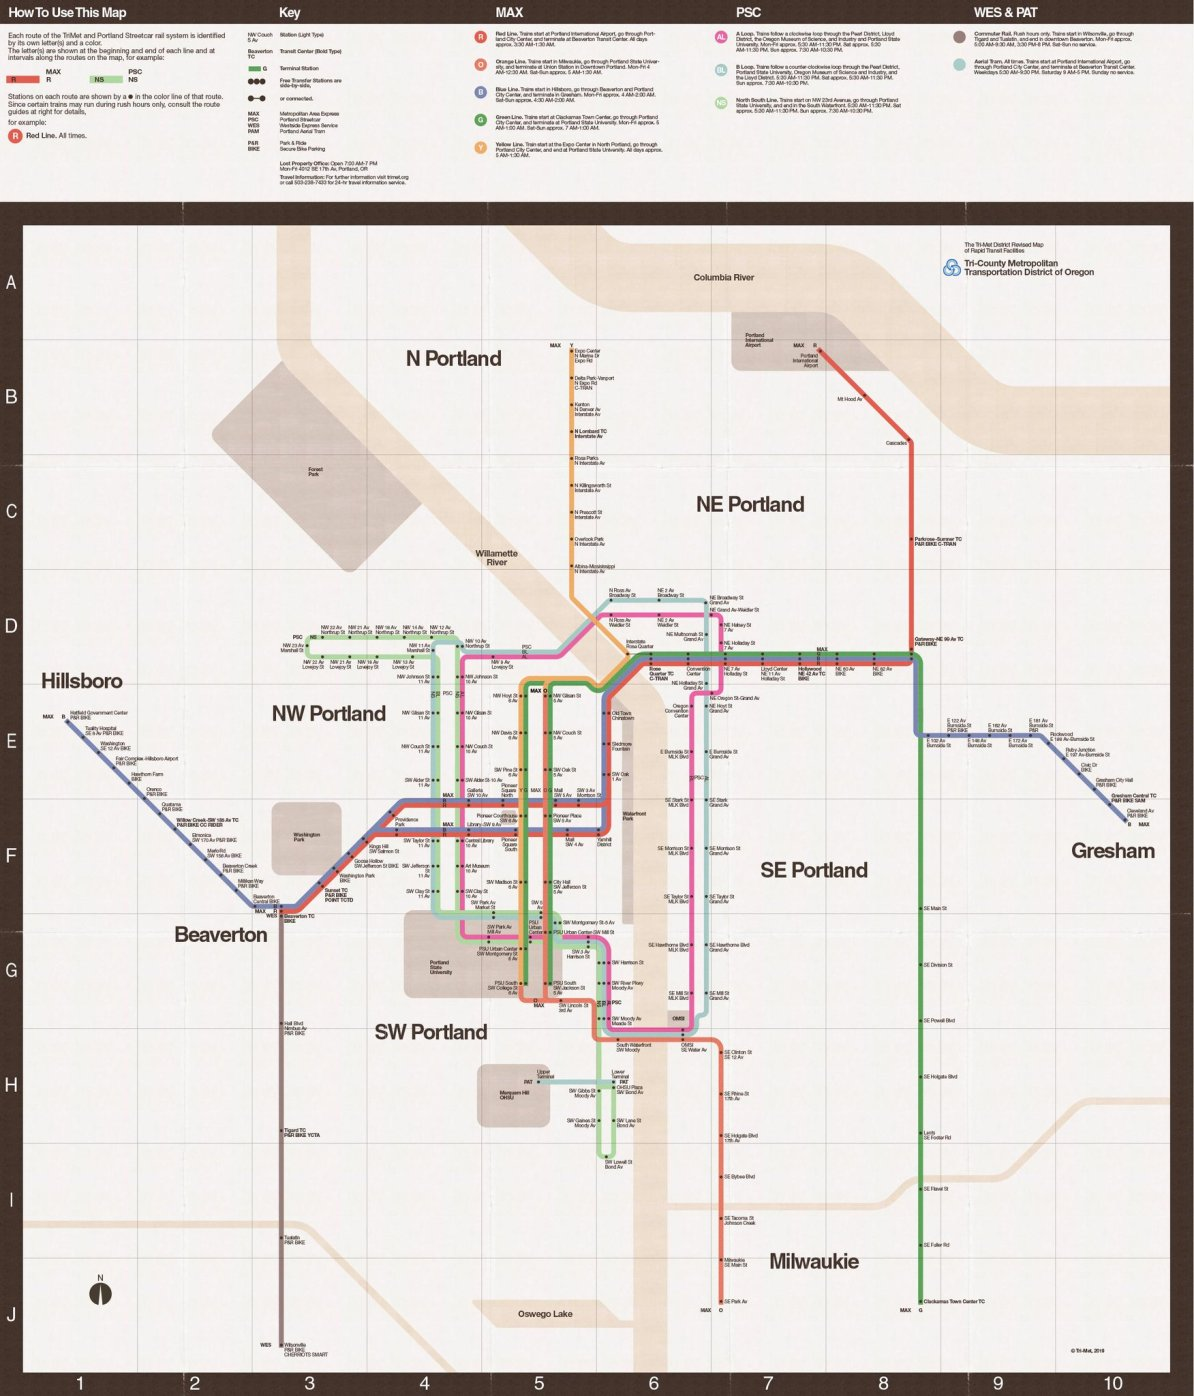 Nyc Subway Map Massimo Vignelli.Transit Maps Fantasy Map Portland Max In The Style Of The Vignelli